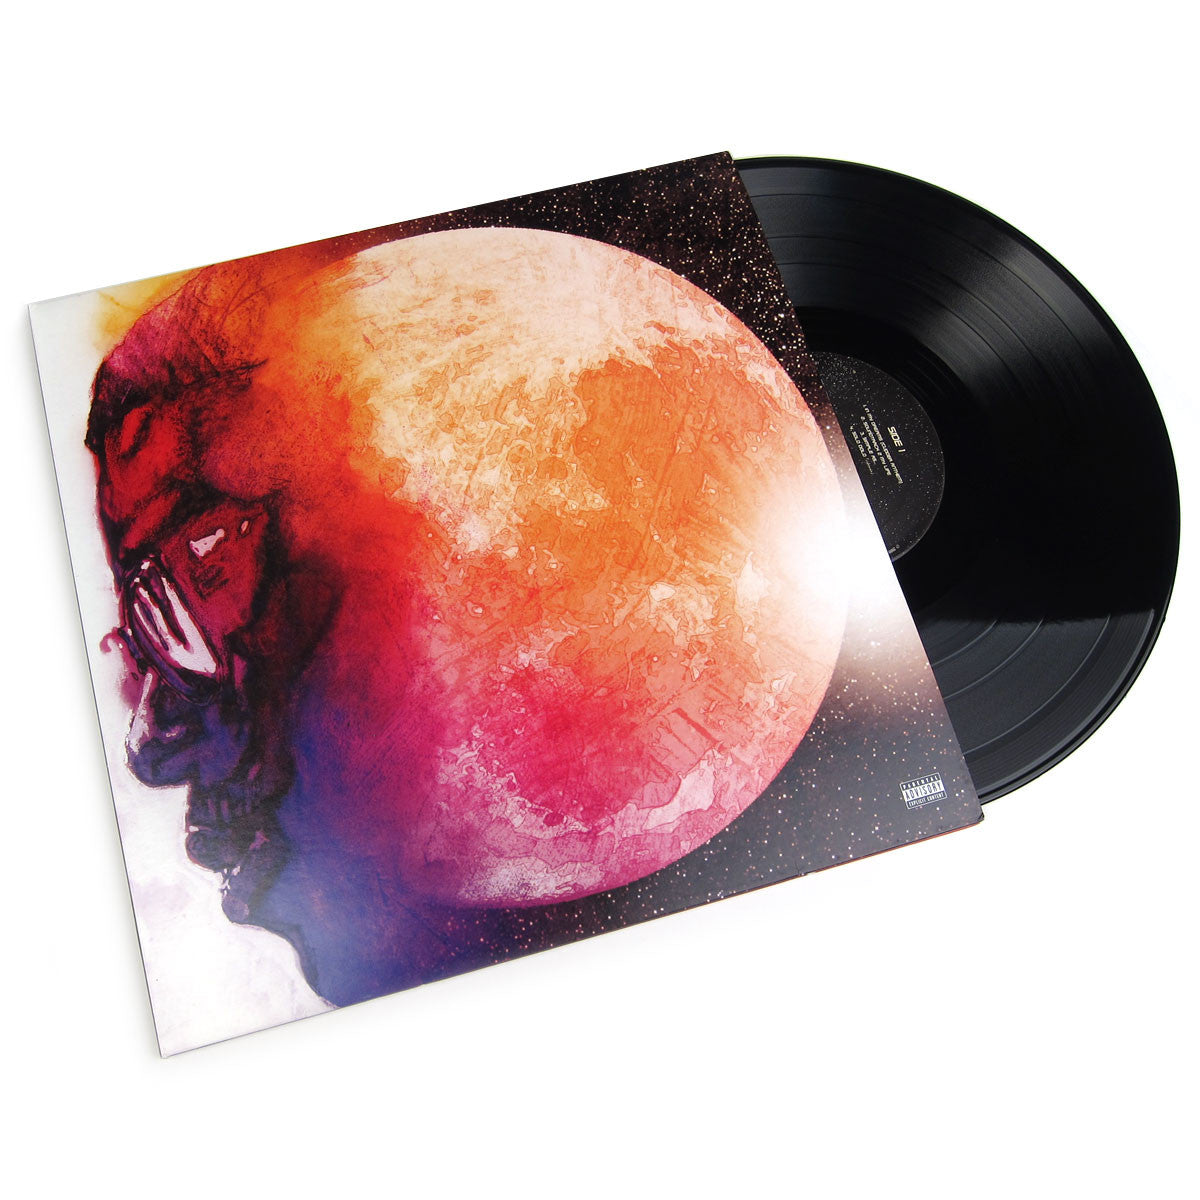 Kid Cudi: Man On The Moon: The End Of Day (with FREE MP3 Download) 2LP